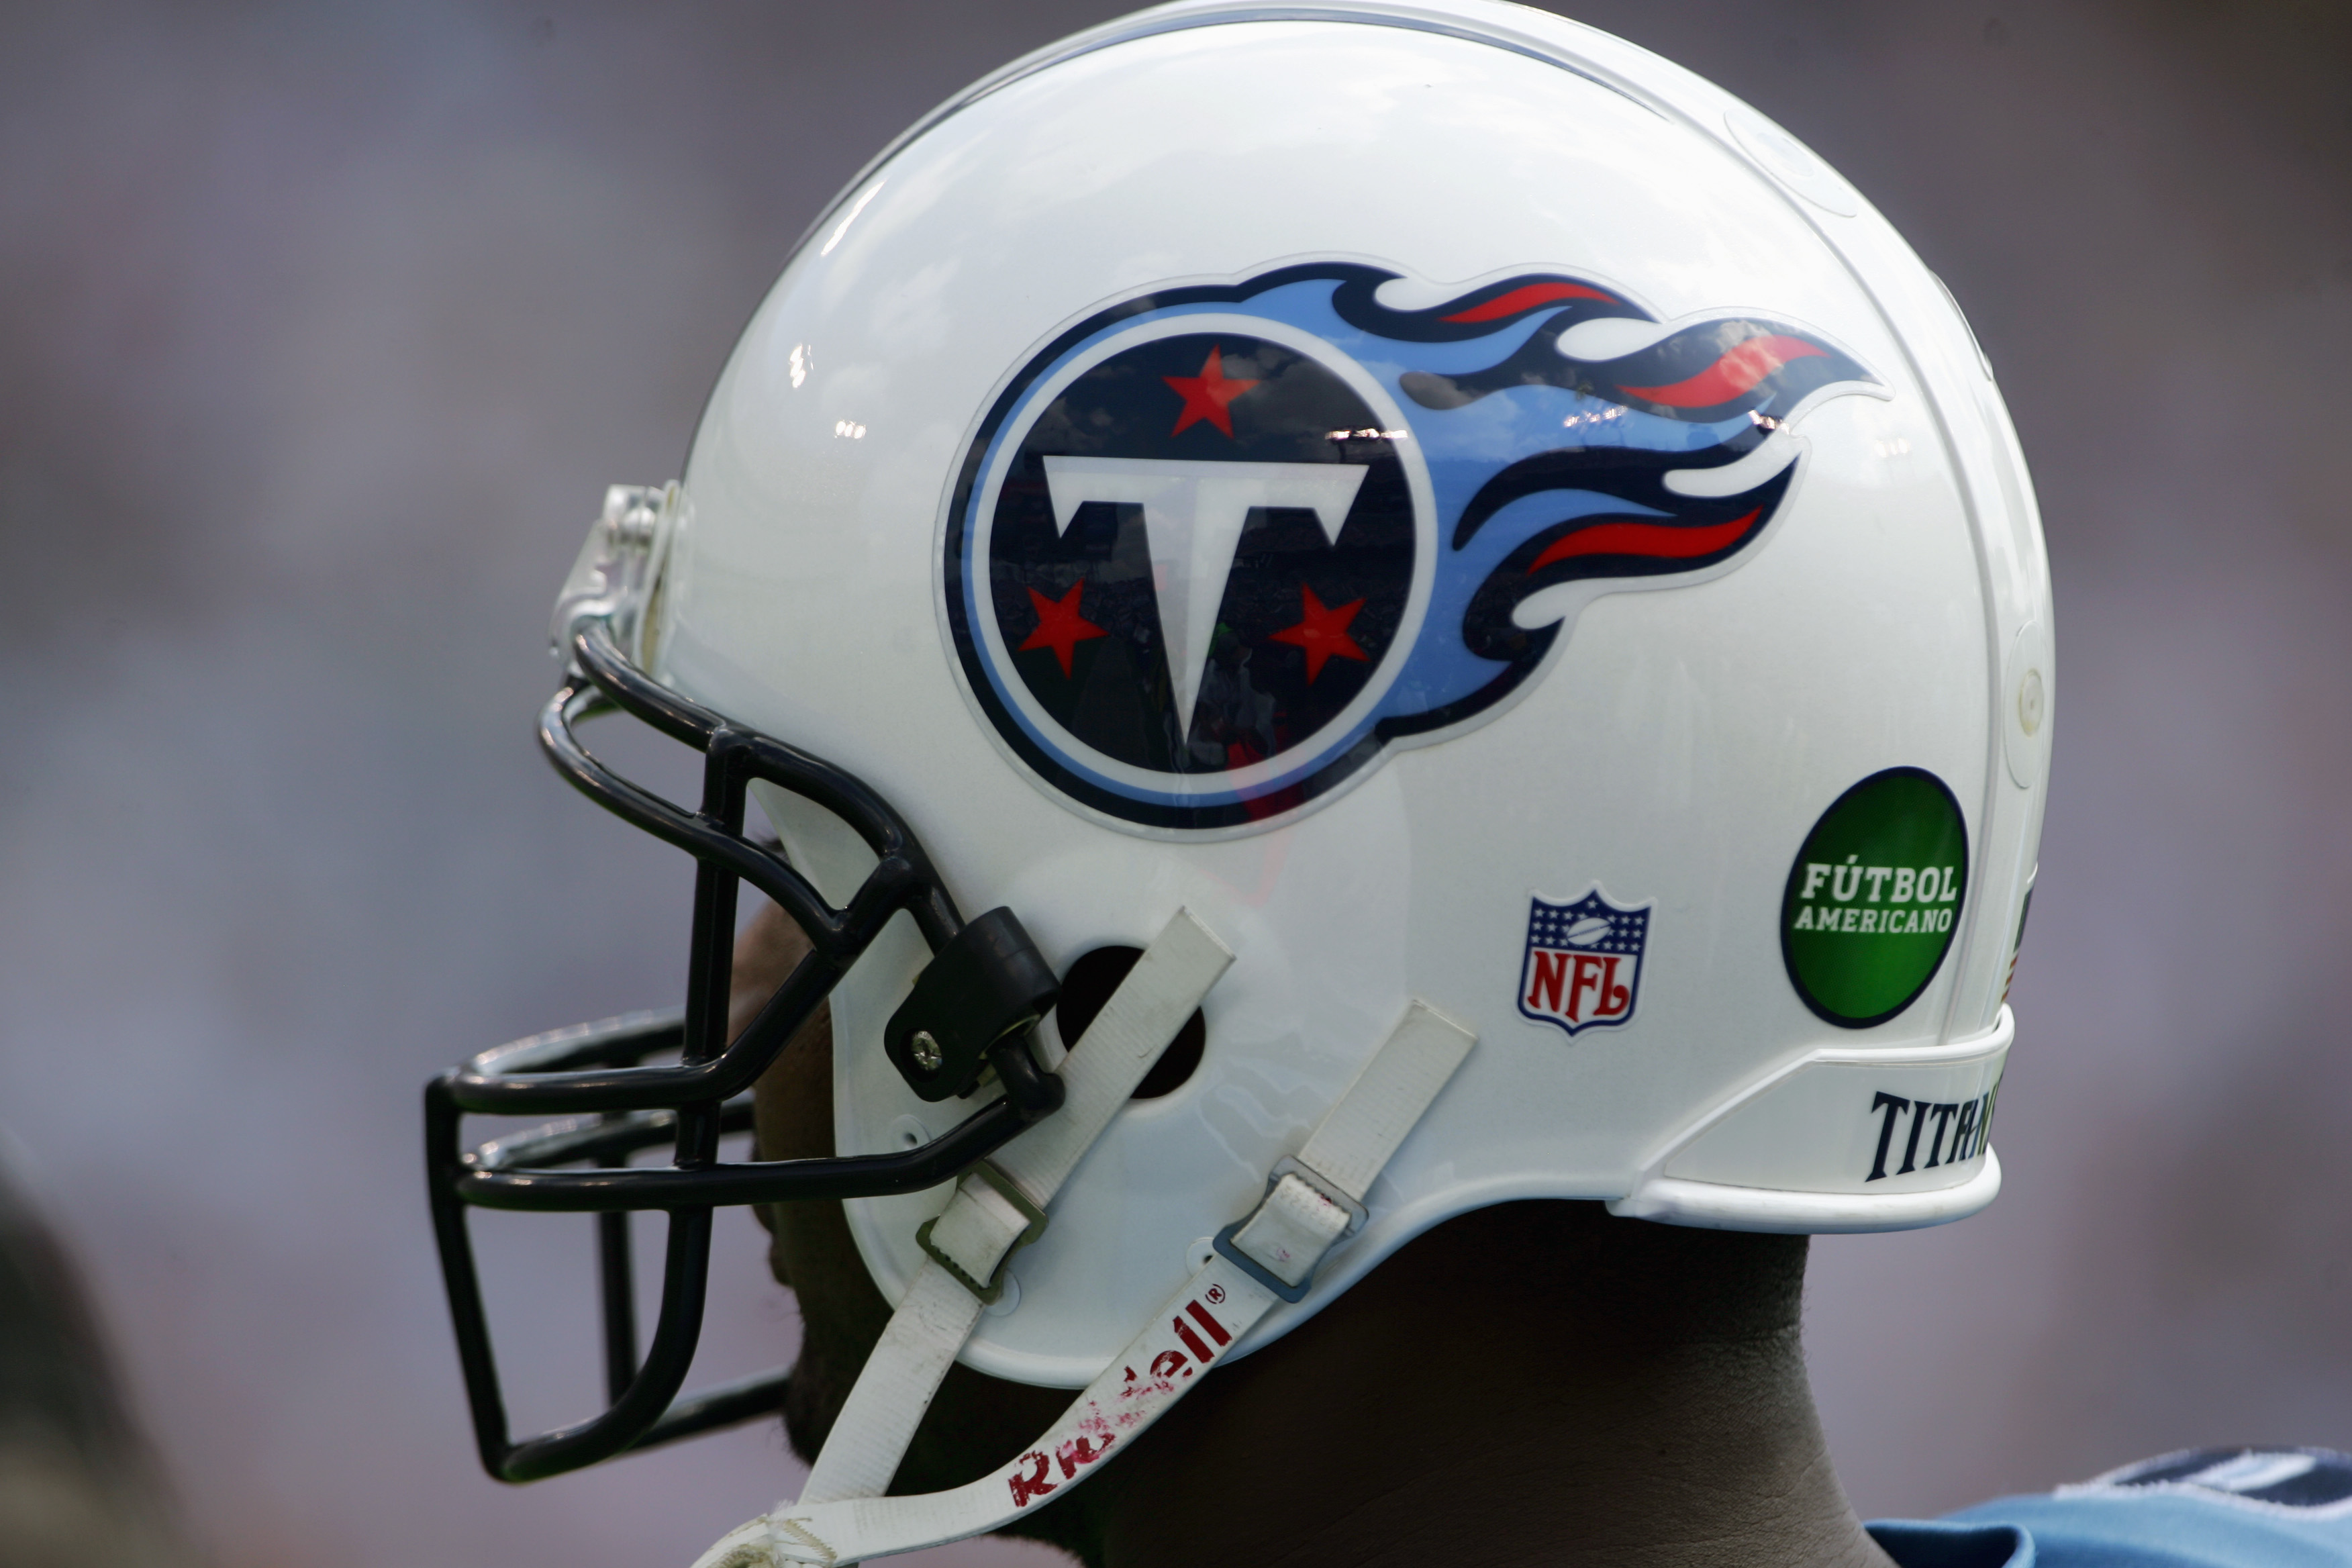 NASHVILLE, TN - OCTOBER 2:  A Tennessee Titans helmet displays the Futbol Americano logo during the game against the Indianapolis Colts at The Coliseum on October 2, 2005 in Nashville, Tennessee. The Colts defeated the Titans 31-10.  (Photo by Doug Pensin